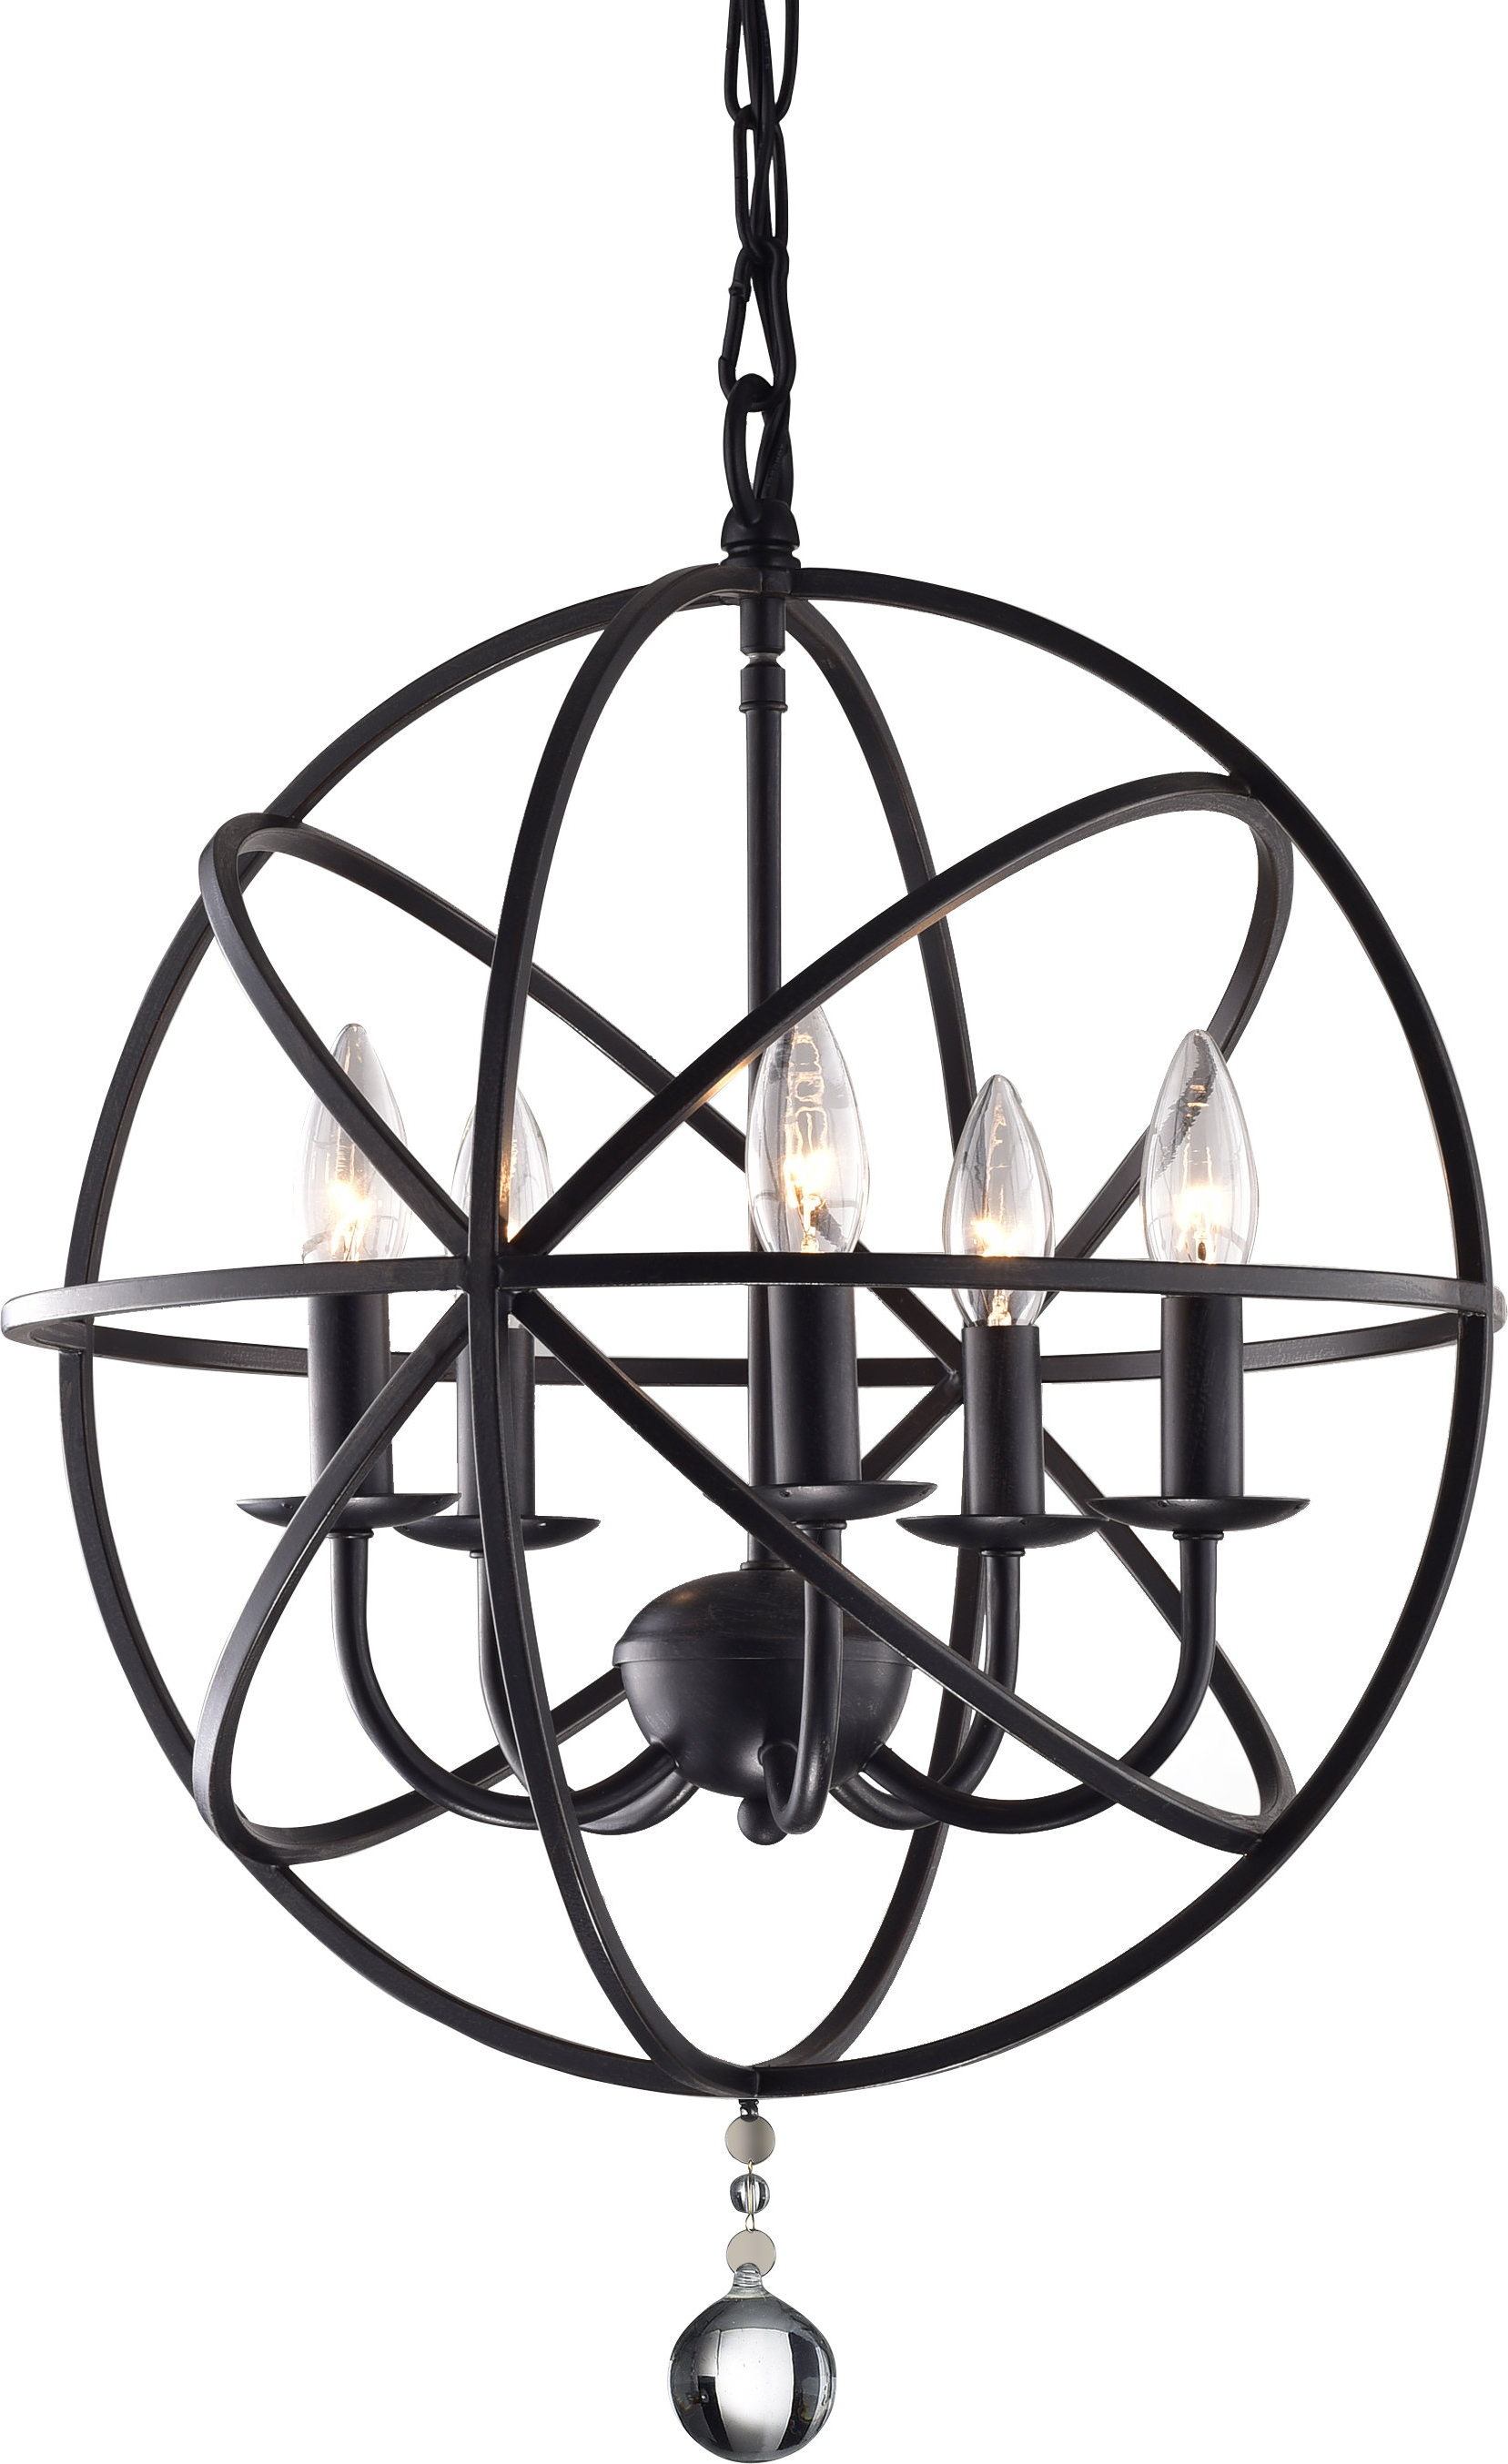 Widely Used Albano Foyer 5 Light Globe Chandelier Pertaining To Verlene Foyer 5 Light Globe Chandeliers (View 25 of 25)